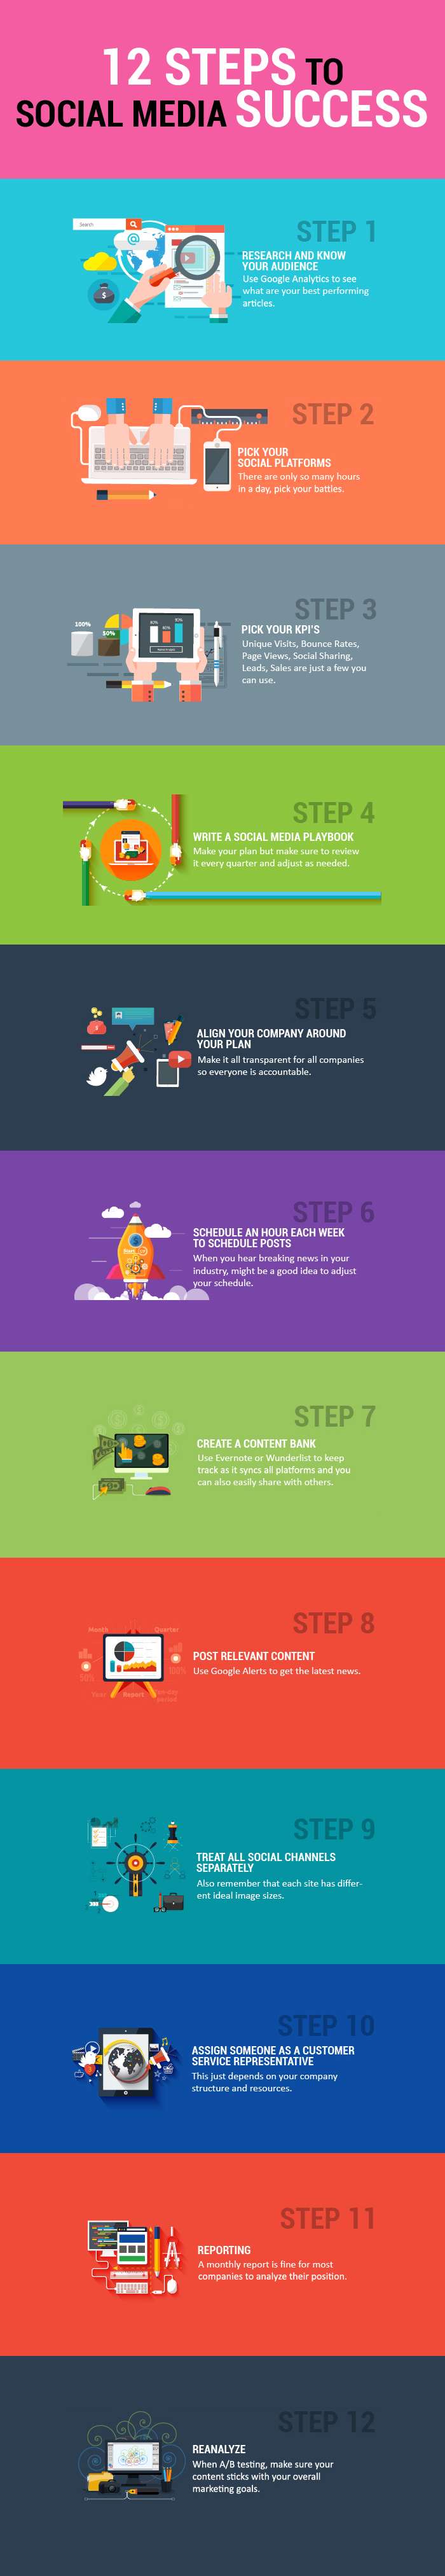 Infographic outlines a 12 step social media marketing strategy